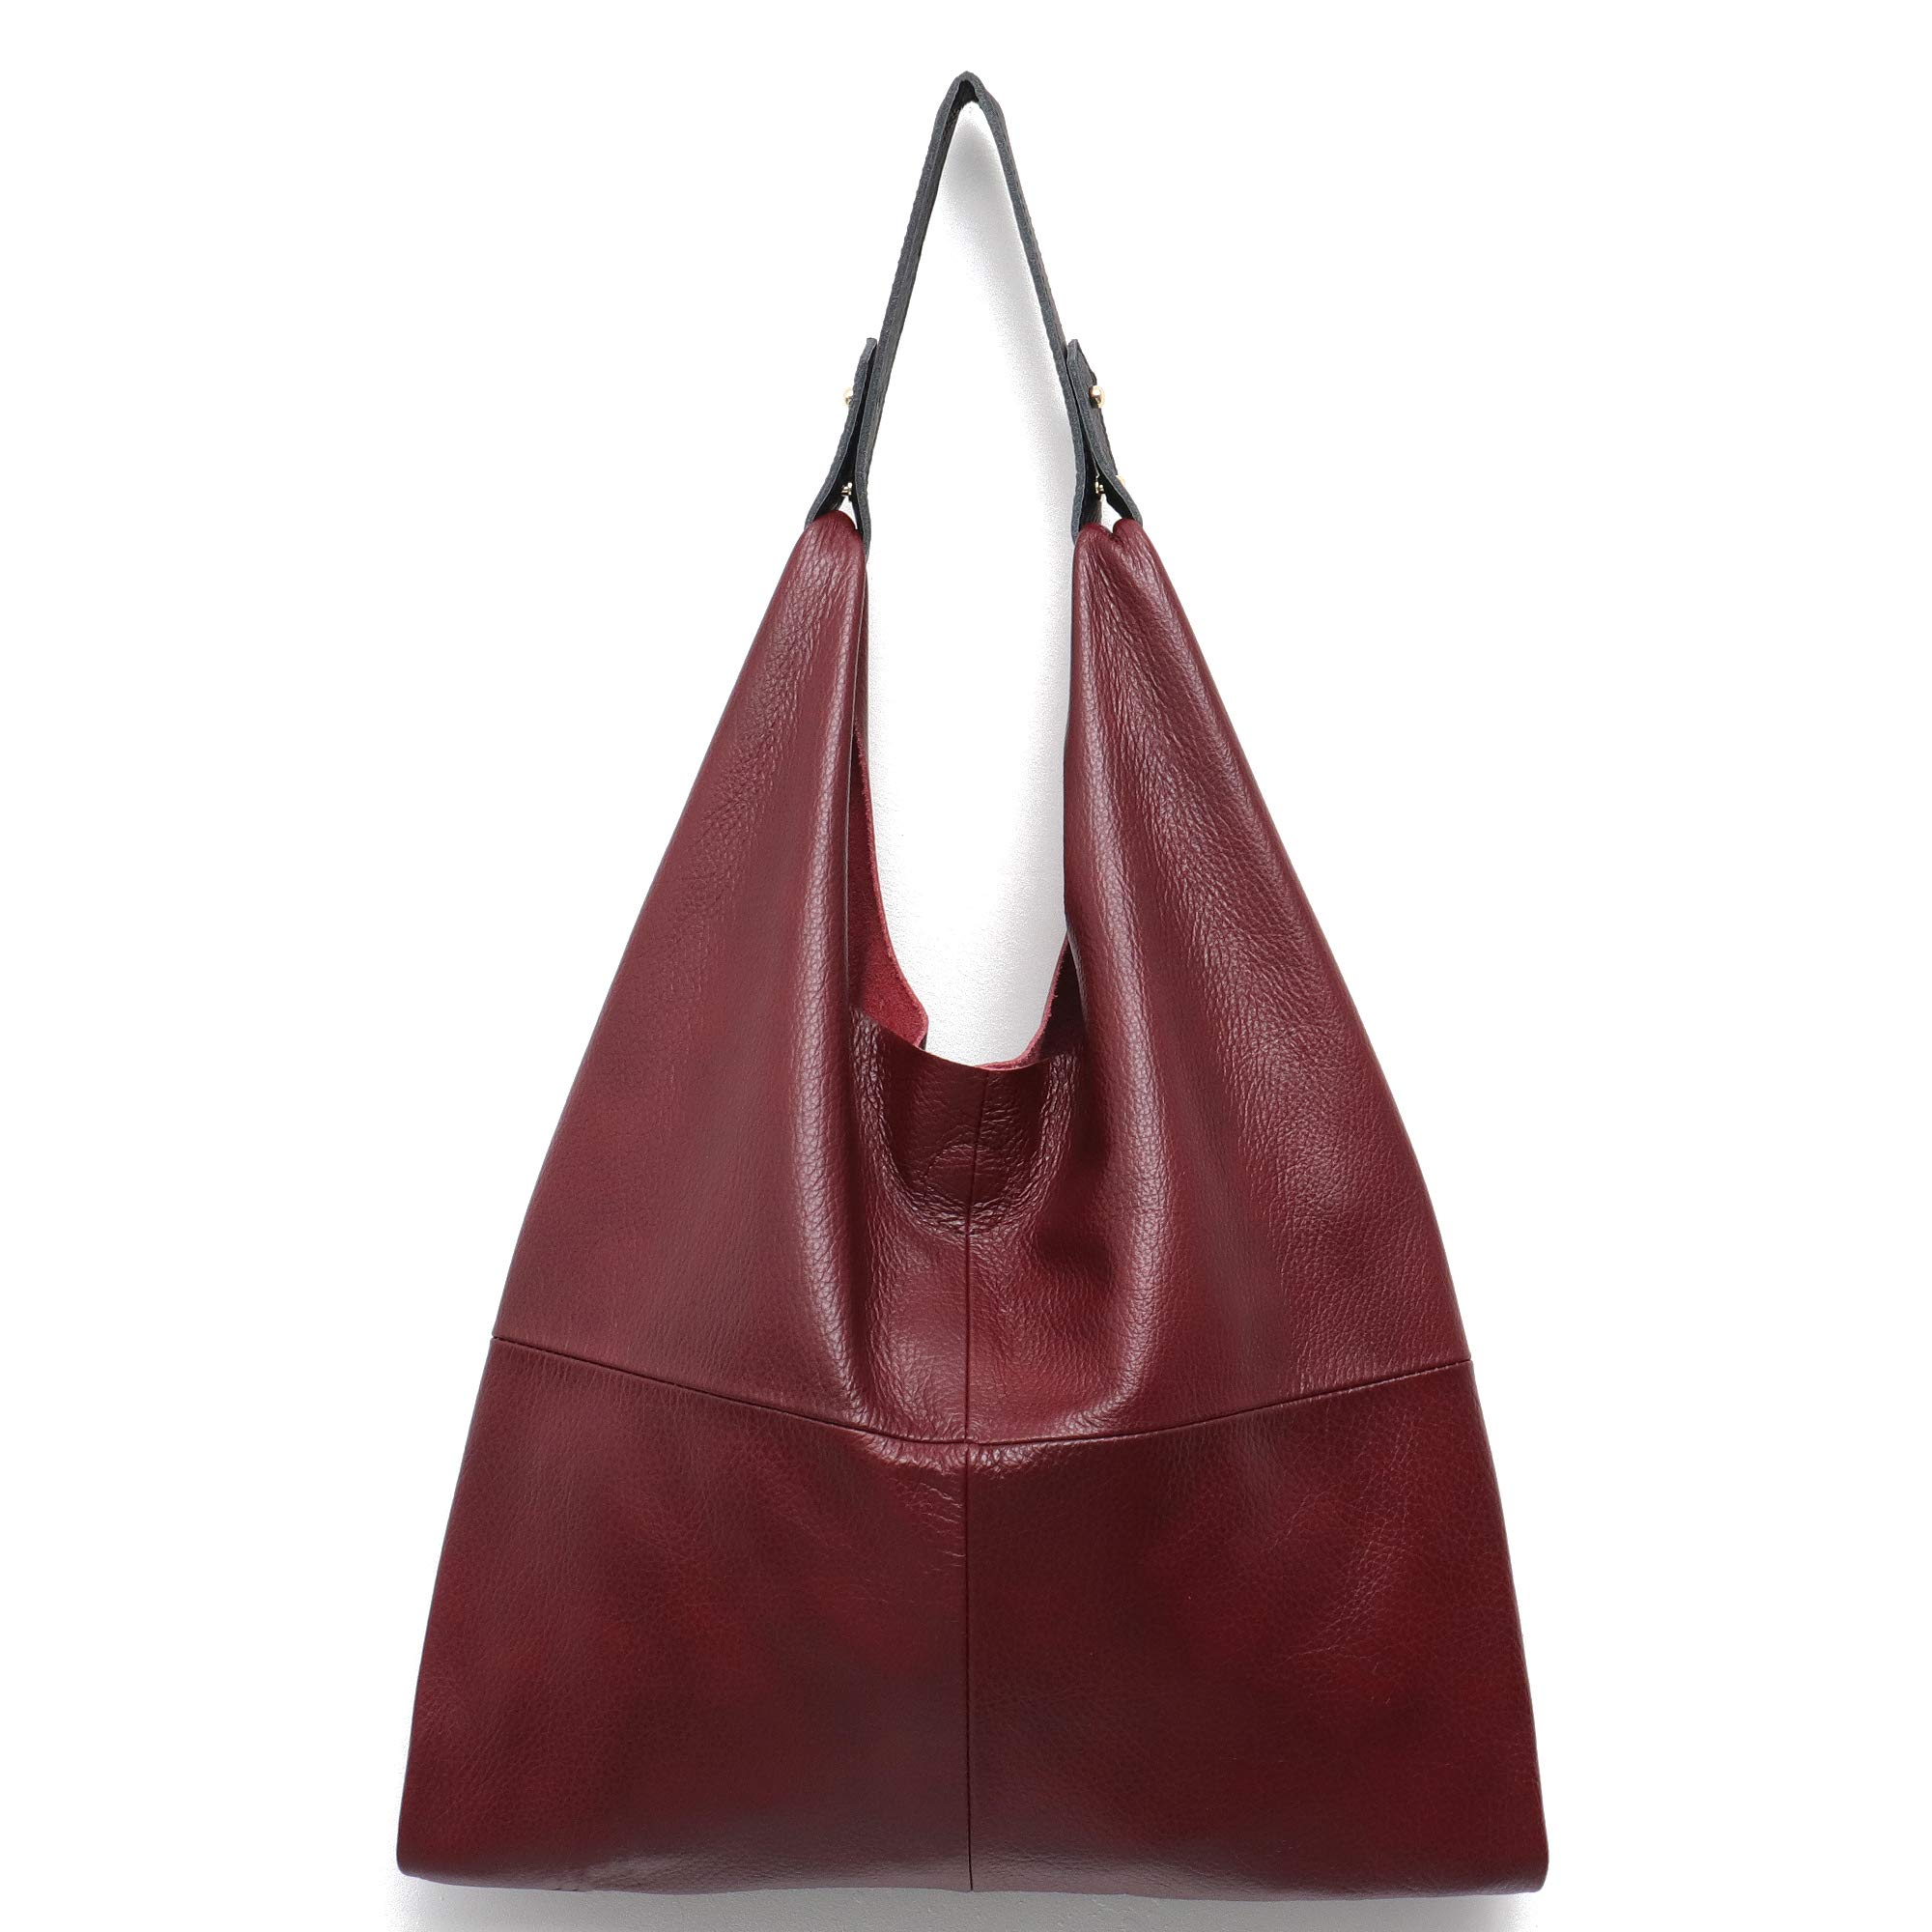 Women's Handbag STEPHIECATH Genuine Leather Slouchy Hobo Shoulder Bag Large Casual Soft Handmade Tote Bags Ladies Vintage Bucket Snap Shopping Bag with Zipper Cellphone Liner Bag Inside (Wine Red)